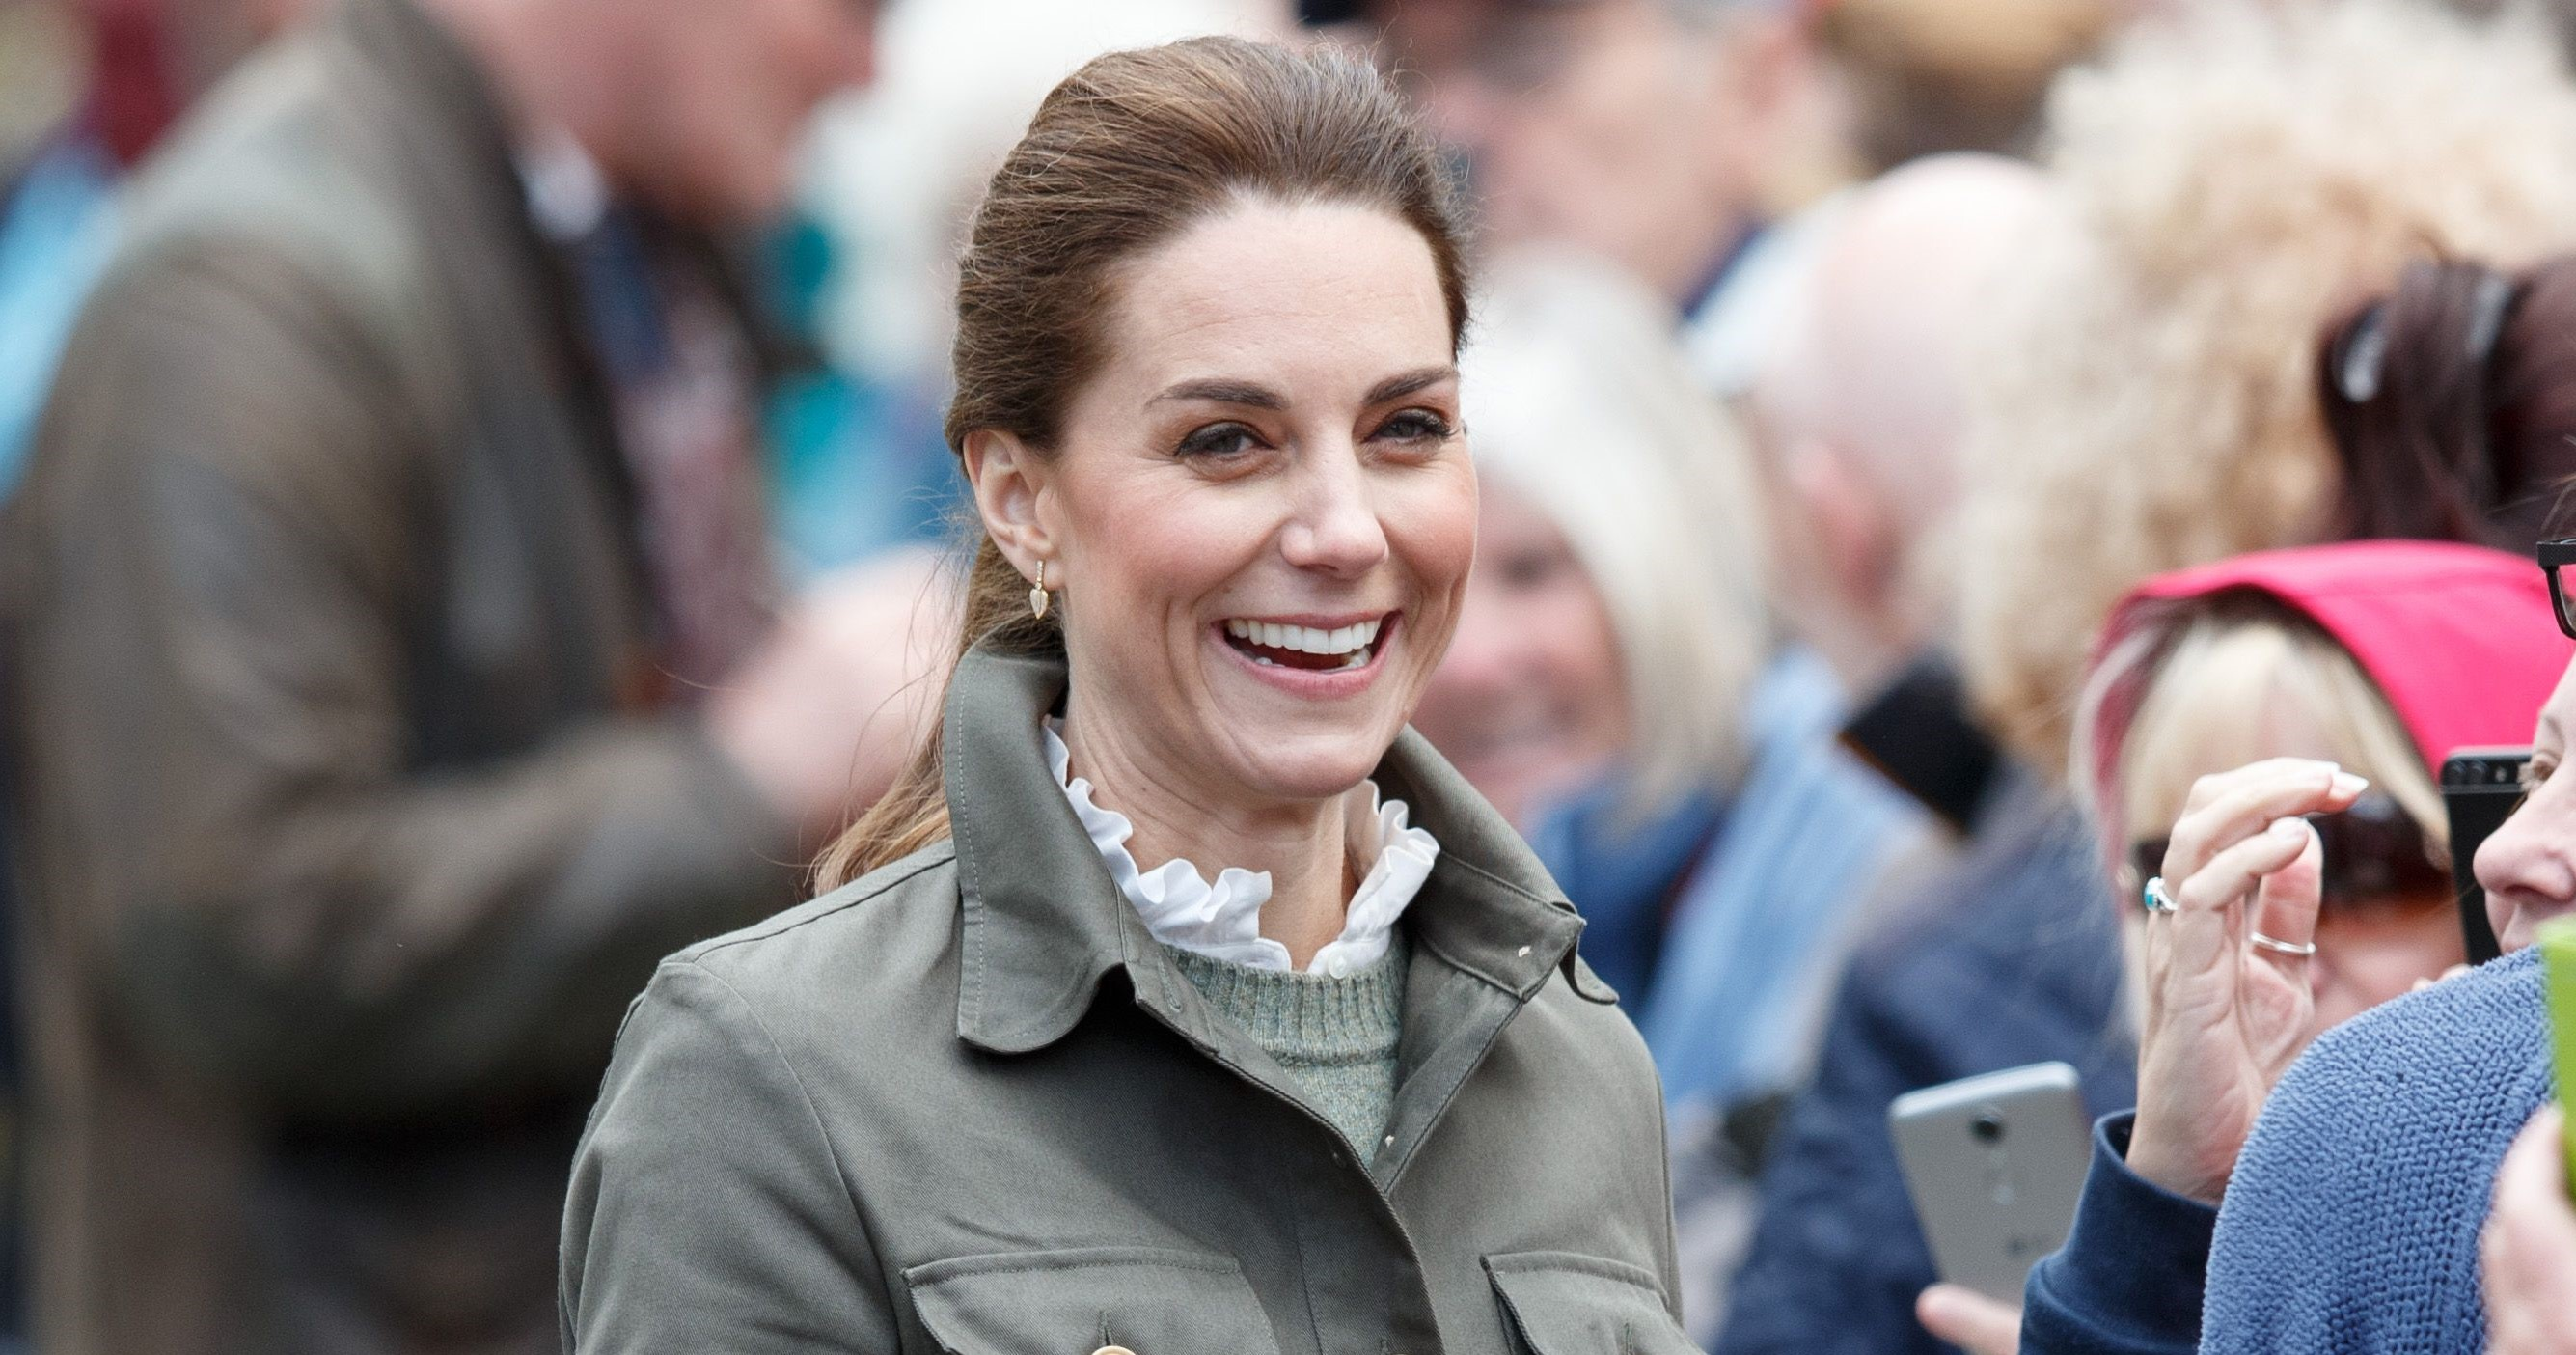 Kate Middleton speaks passionately about her addictions advocacy in rare speech